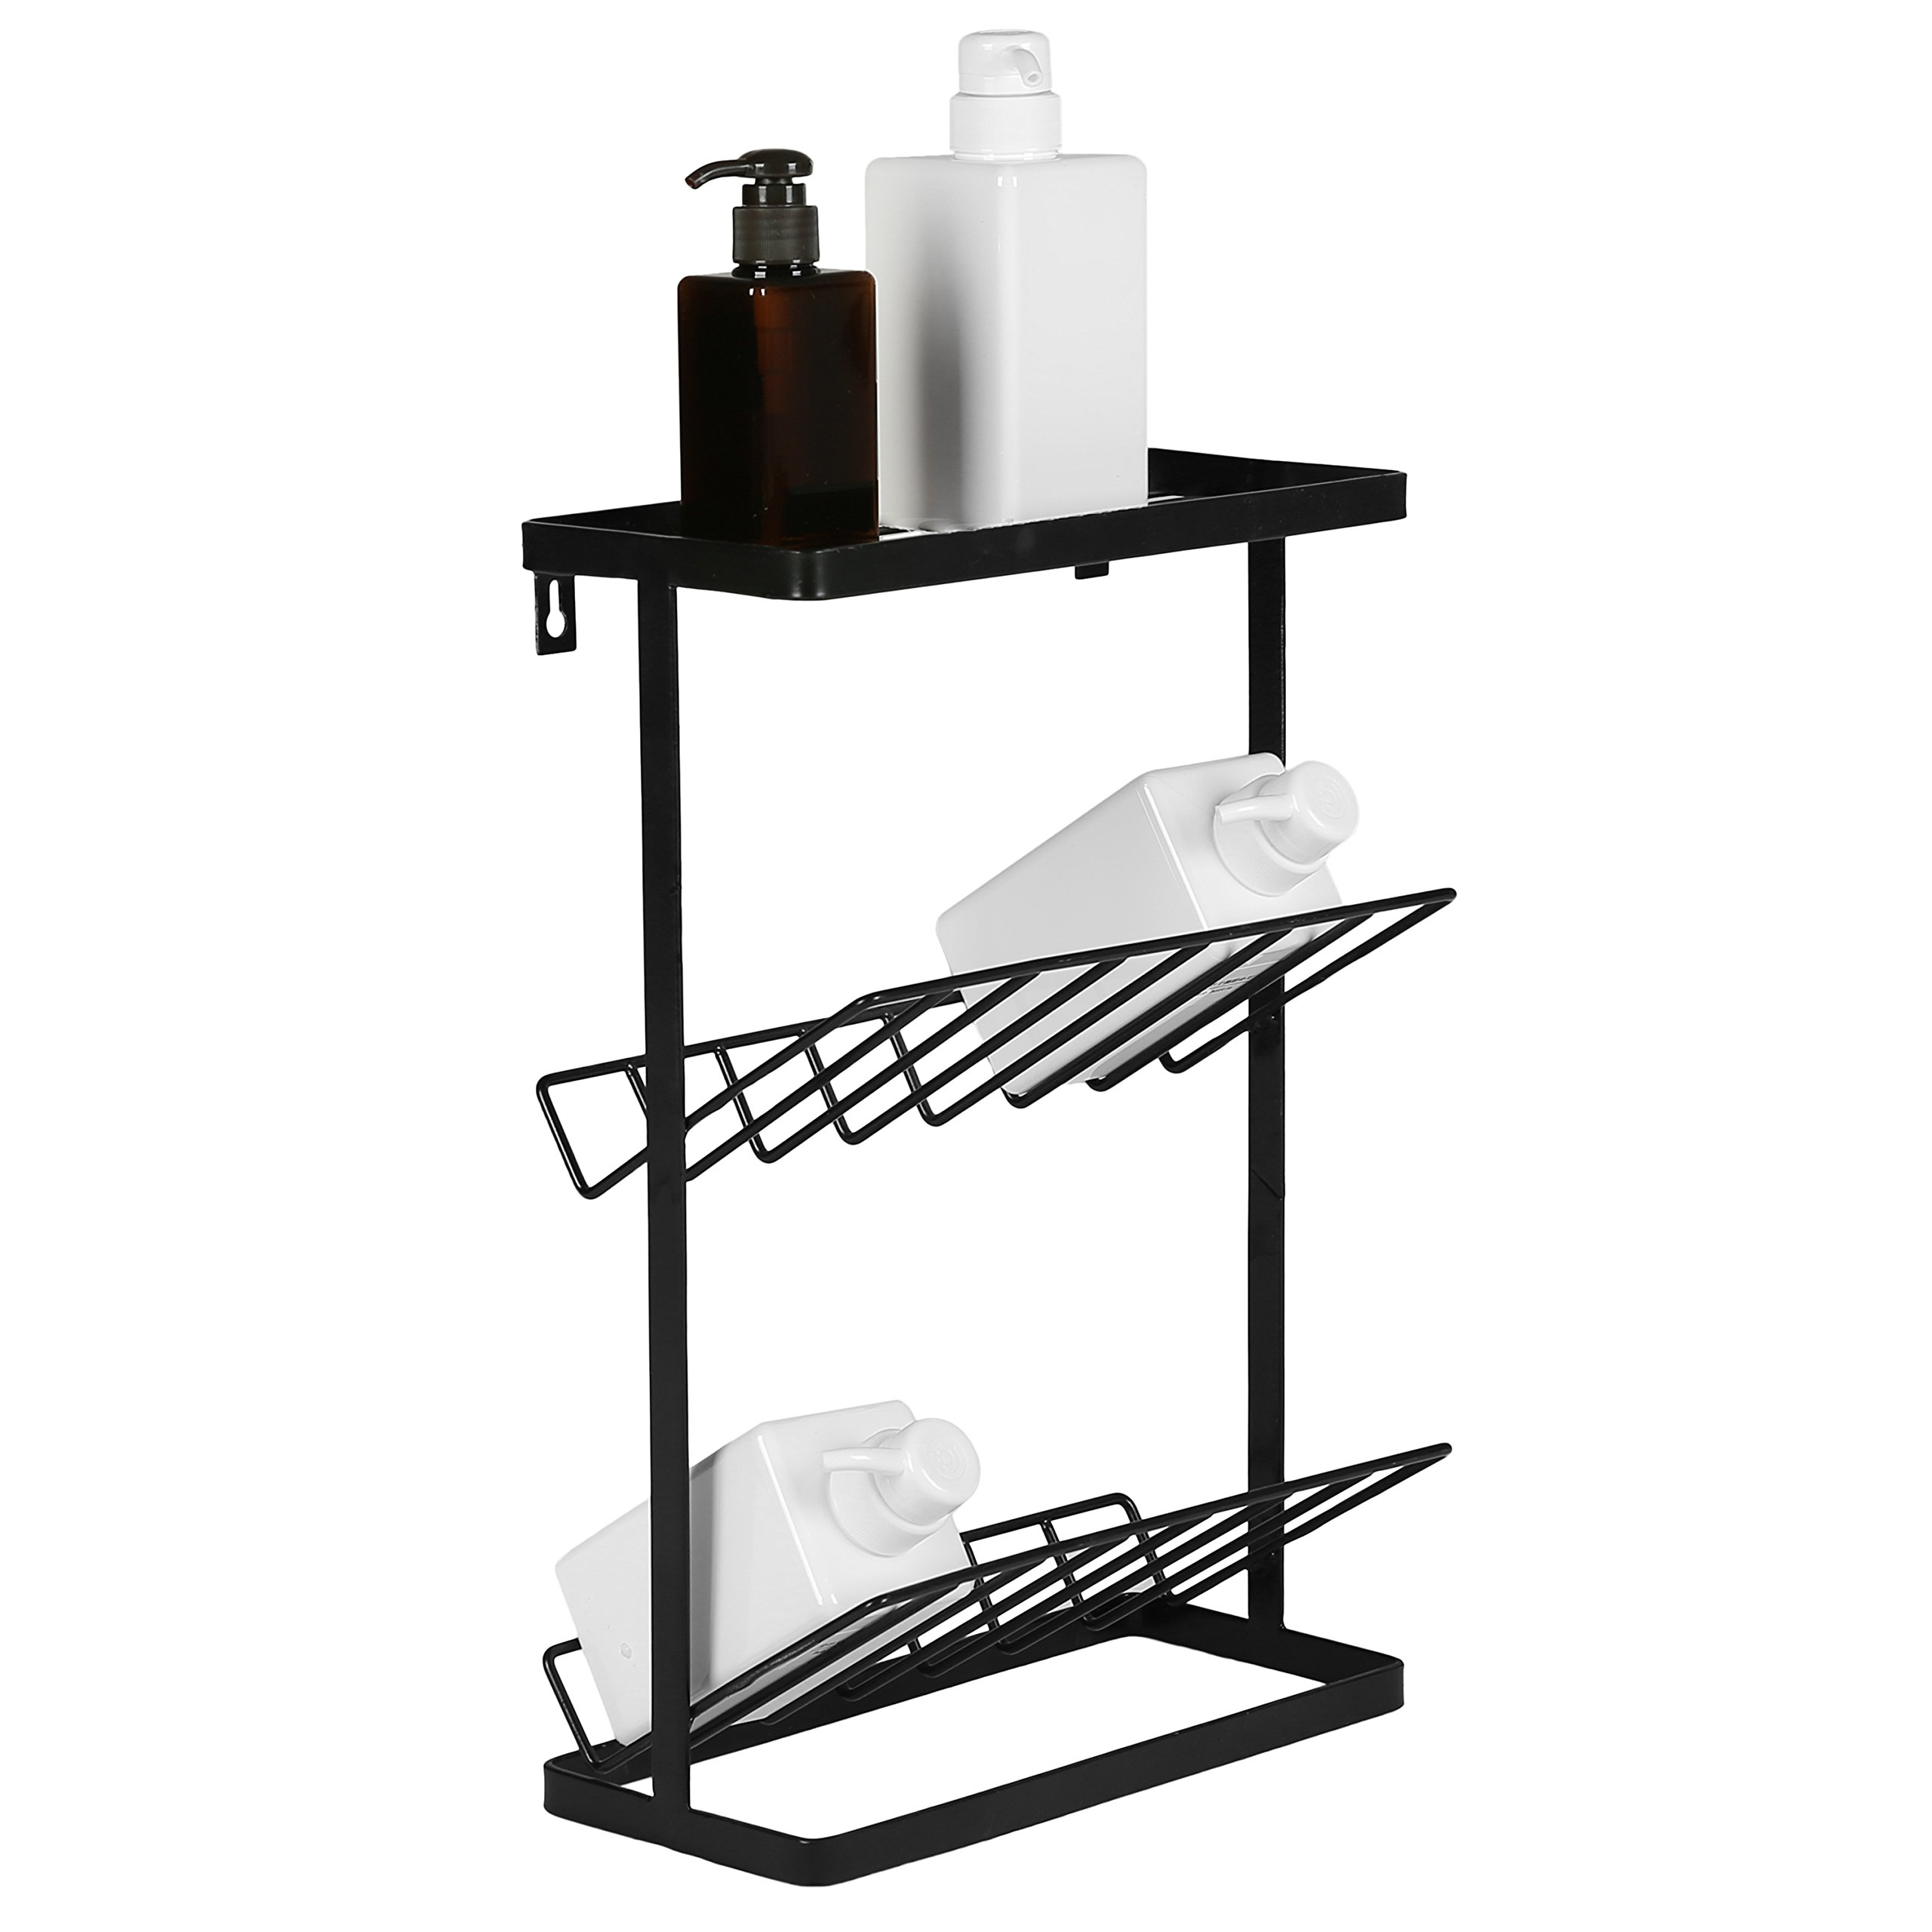 3-Tier Standing Metal Bathroom Storage Organizer Shelf, Wall Mountable Toiletries Holder Rack, Black by MyGift